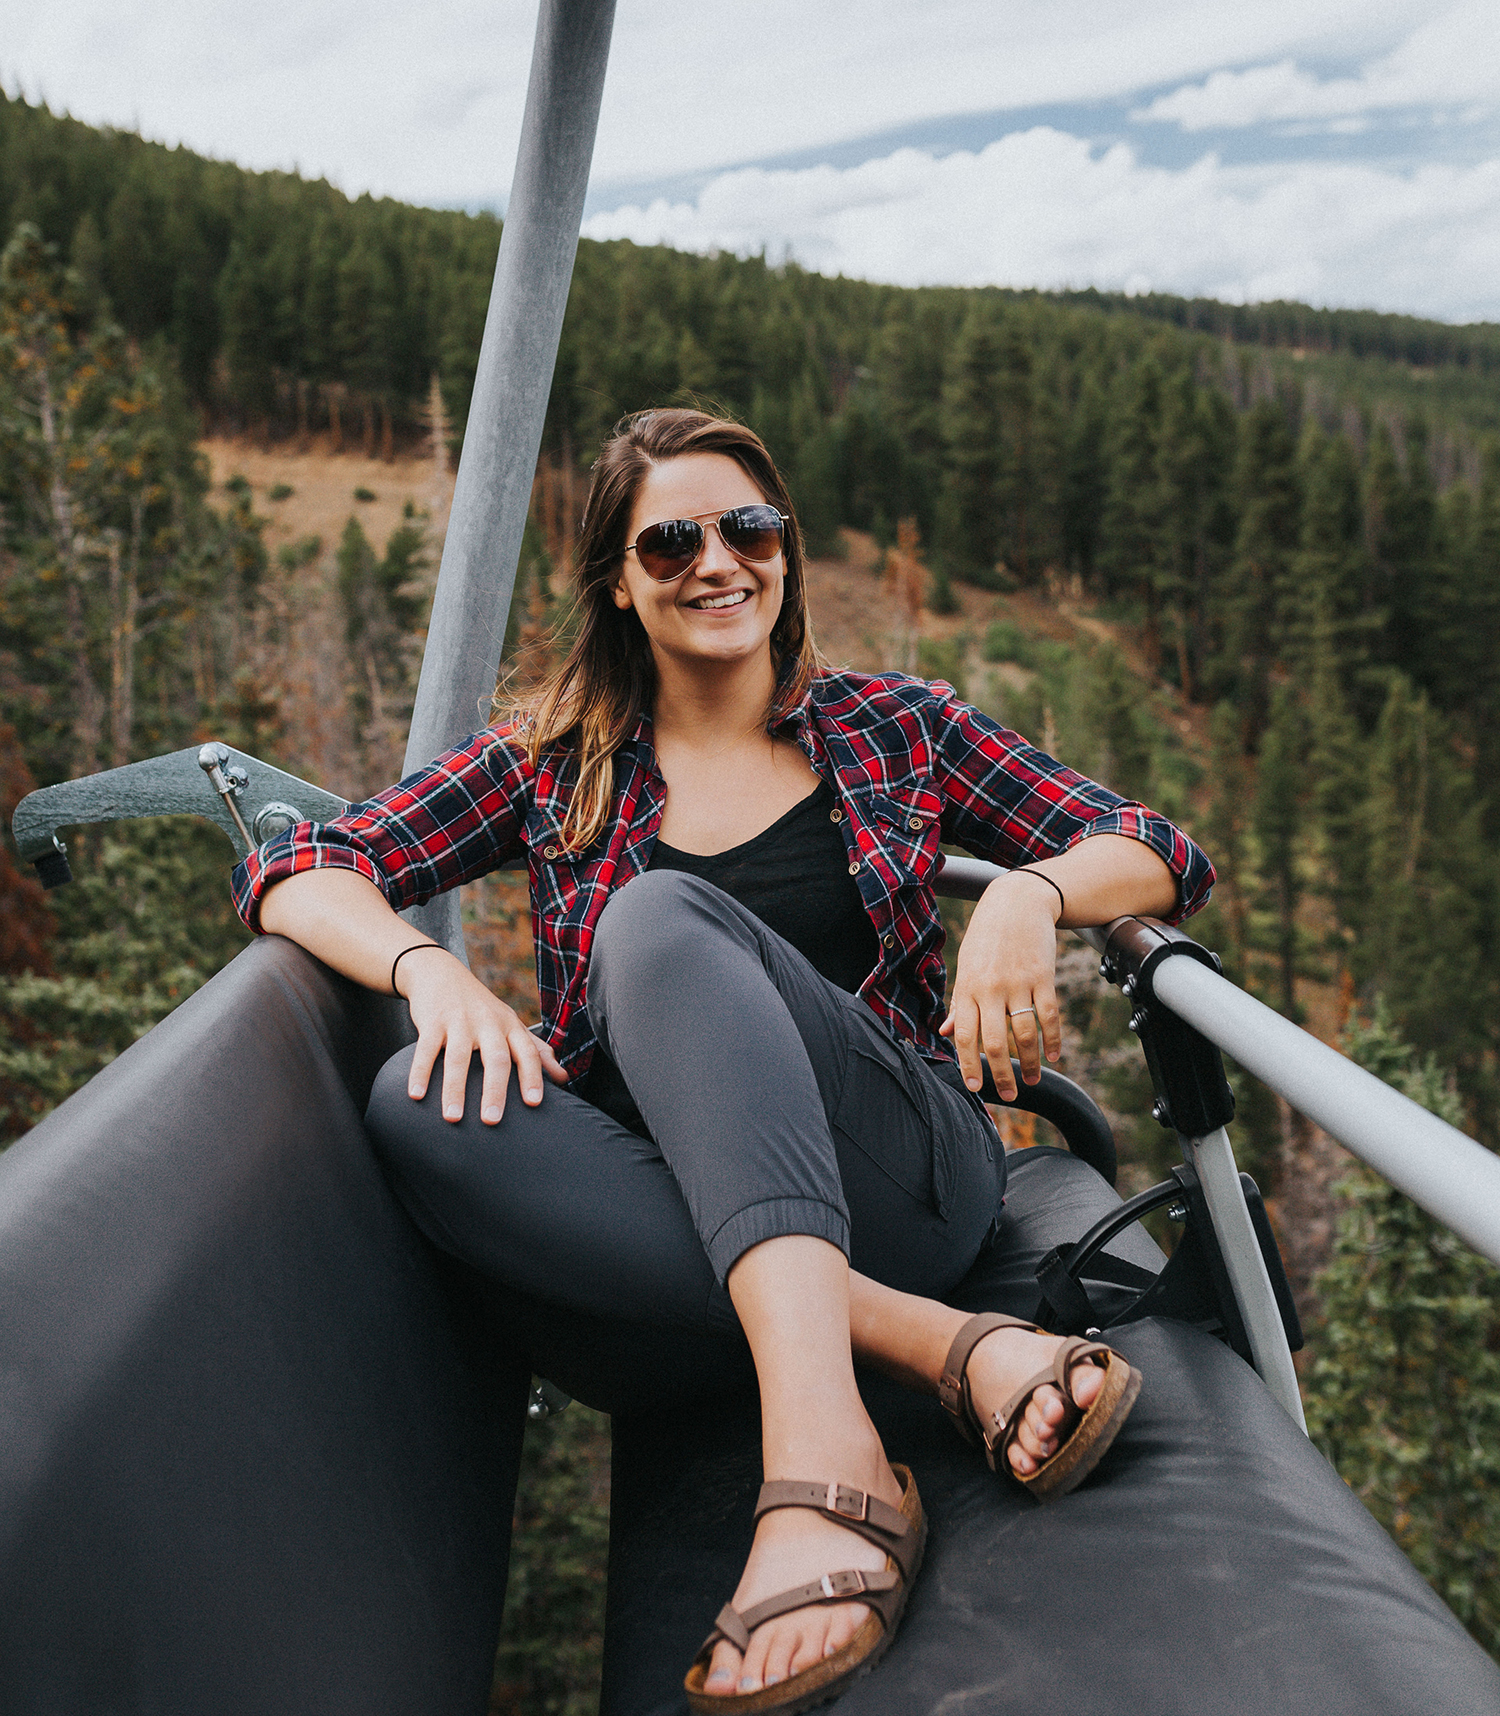 Hi Guys! - I'm Jill! I'm an East Coast native born in the wrong place! I grew up amidst a busy city & always craved being surrounded by the most magnificant nature this world has to offer.. That's why I relocated to Colorado, where endless adventures are right at my doorstep!